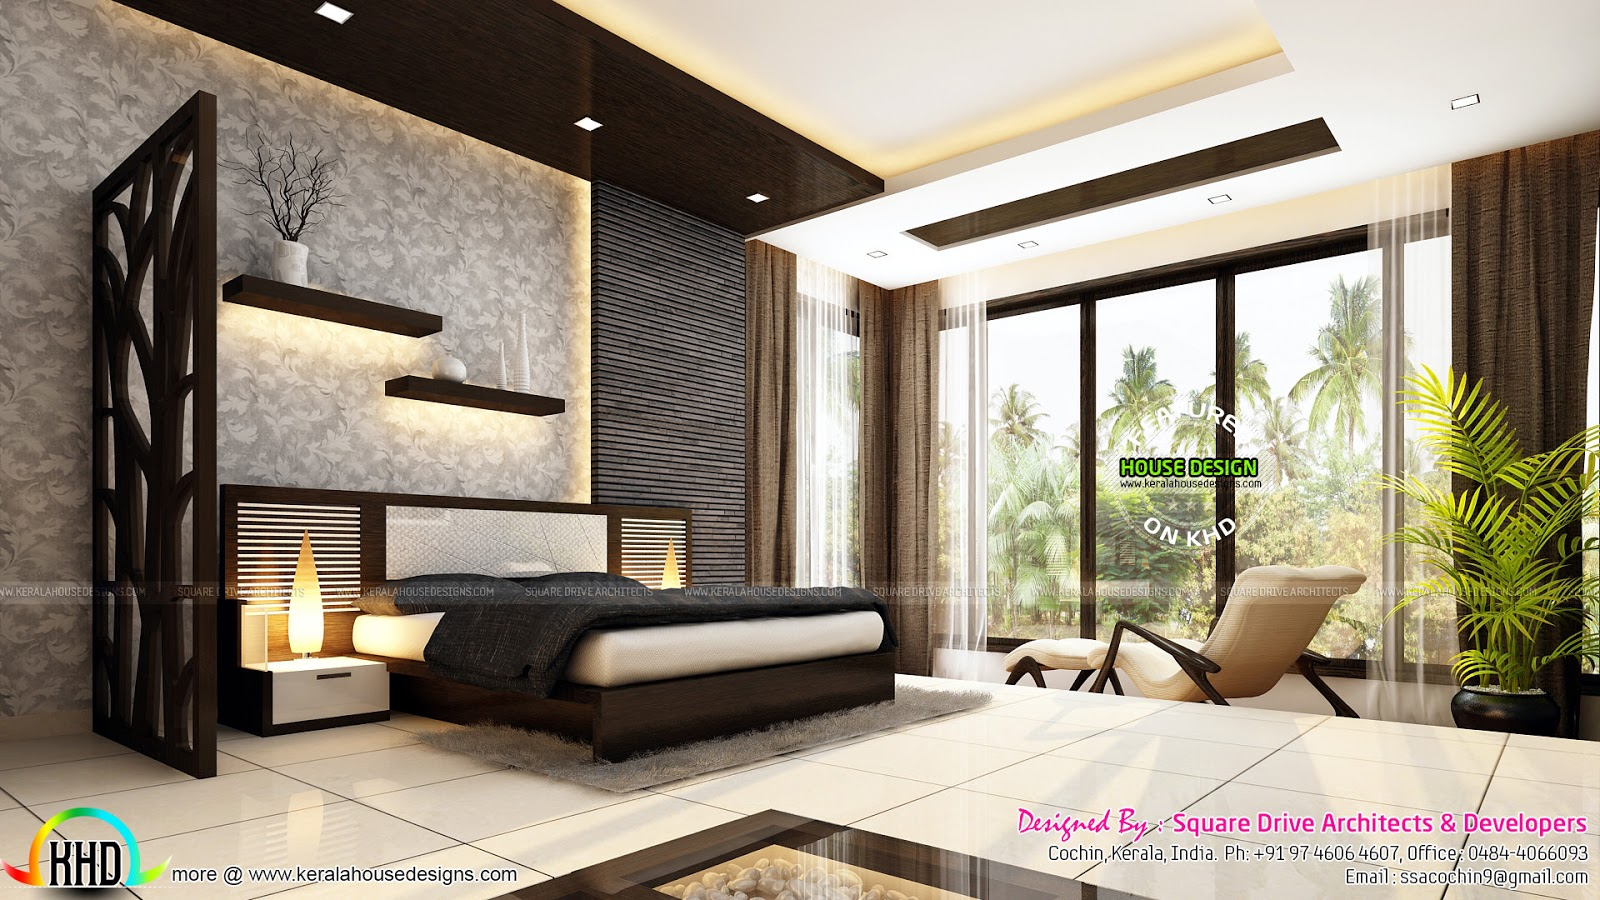 Very beautiful modern interior designs kerala home for Contemporary interior designer